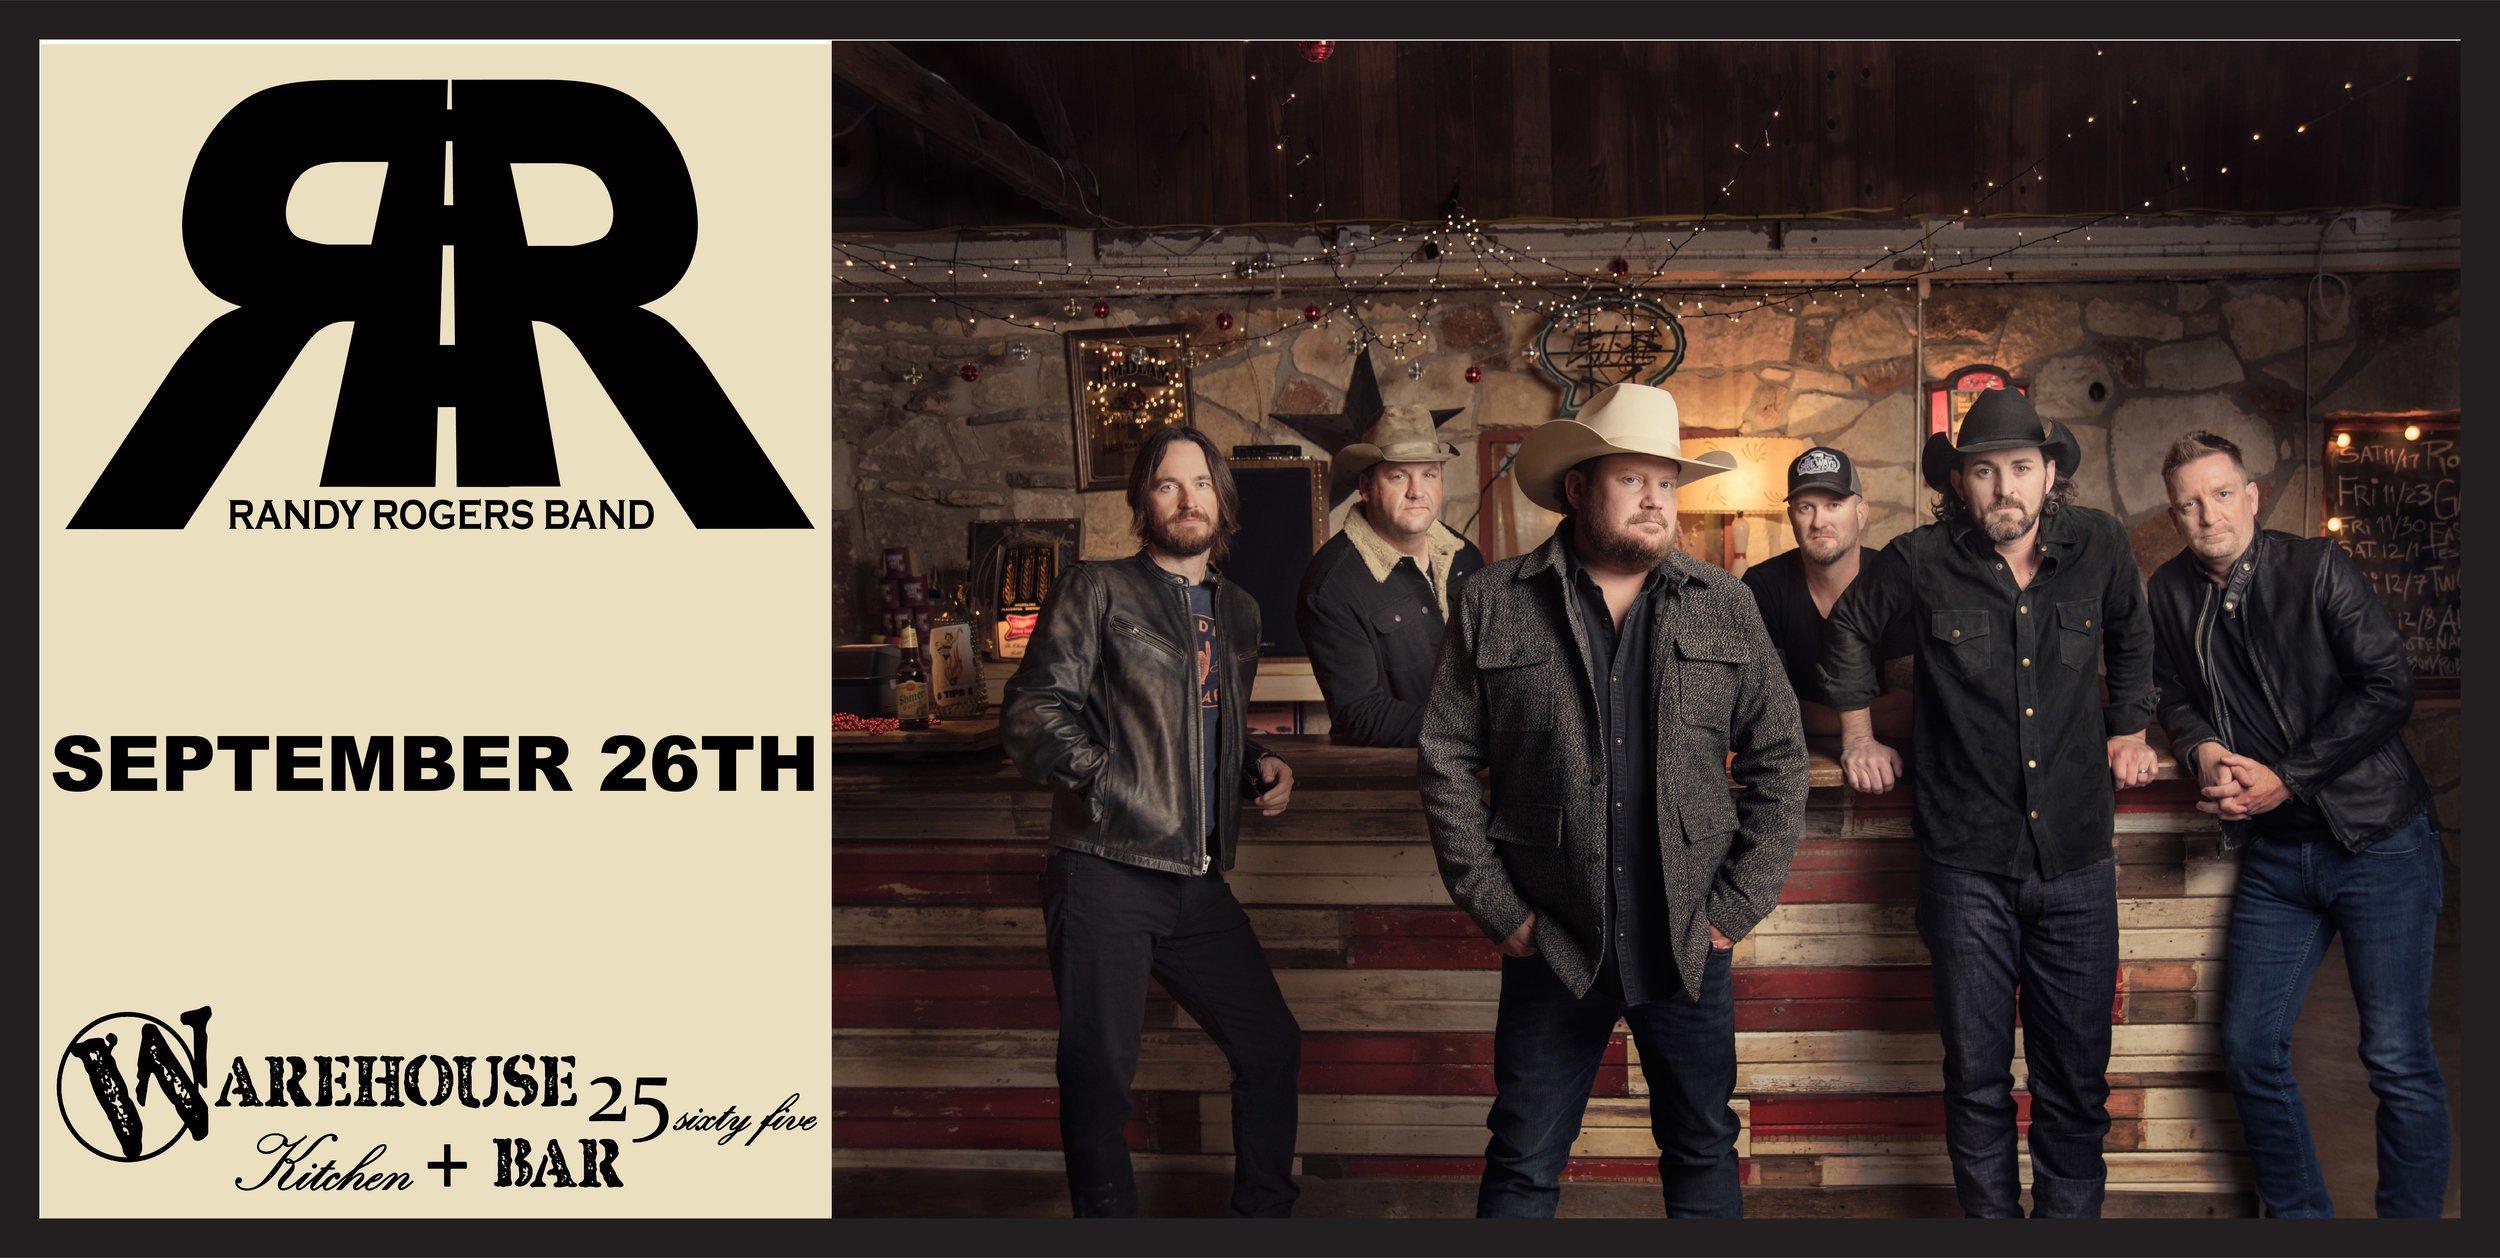 Randy Rogers Band is set to light up the Warehouse for an unforgettable night of Texas Country Music! Tickets go on sale 7/12 @ 10:00 AM Click on the Picture, Make sure you get em while they last!